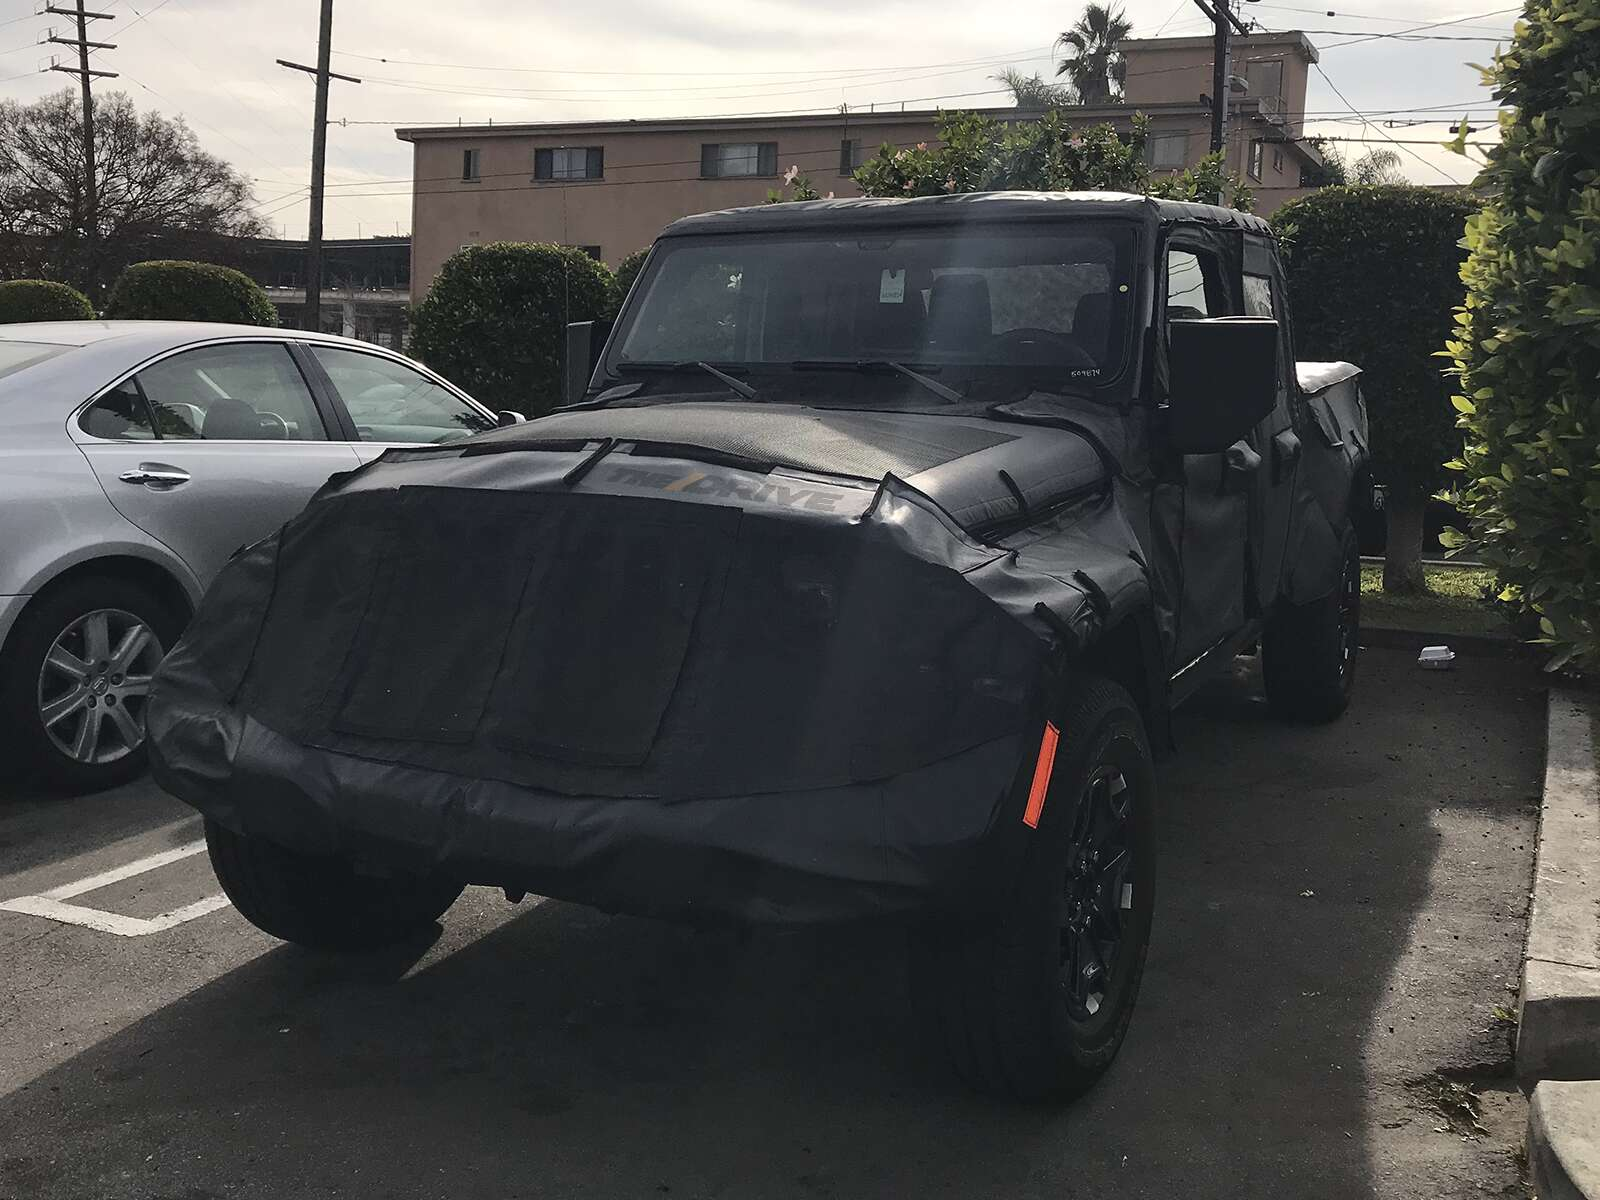 Exclusive Shots Suggest The 2019 Jeep Wrangler Pickup Truck Will Pick Up Kyle Cheromcha